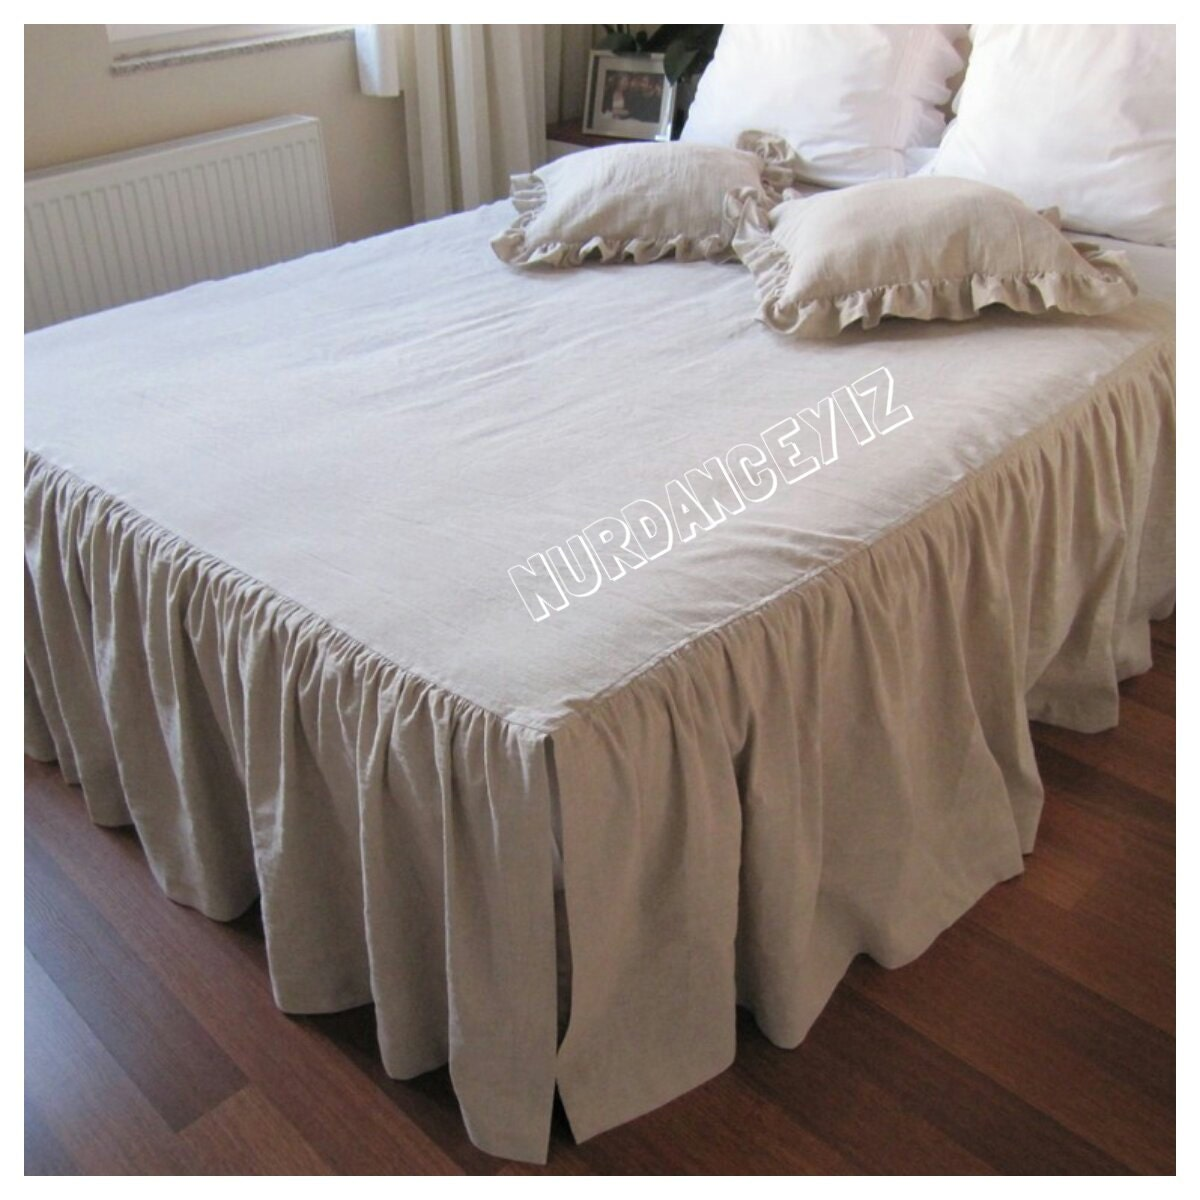 % linen bedskirt. % cotton deck. Detailed with pintuck pleats and ruffled hem with frayed edges. 17